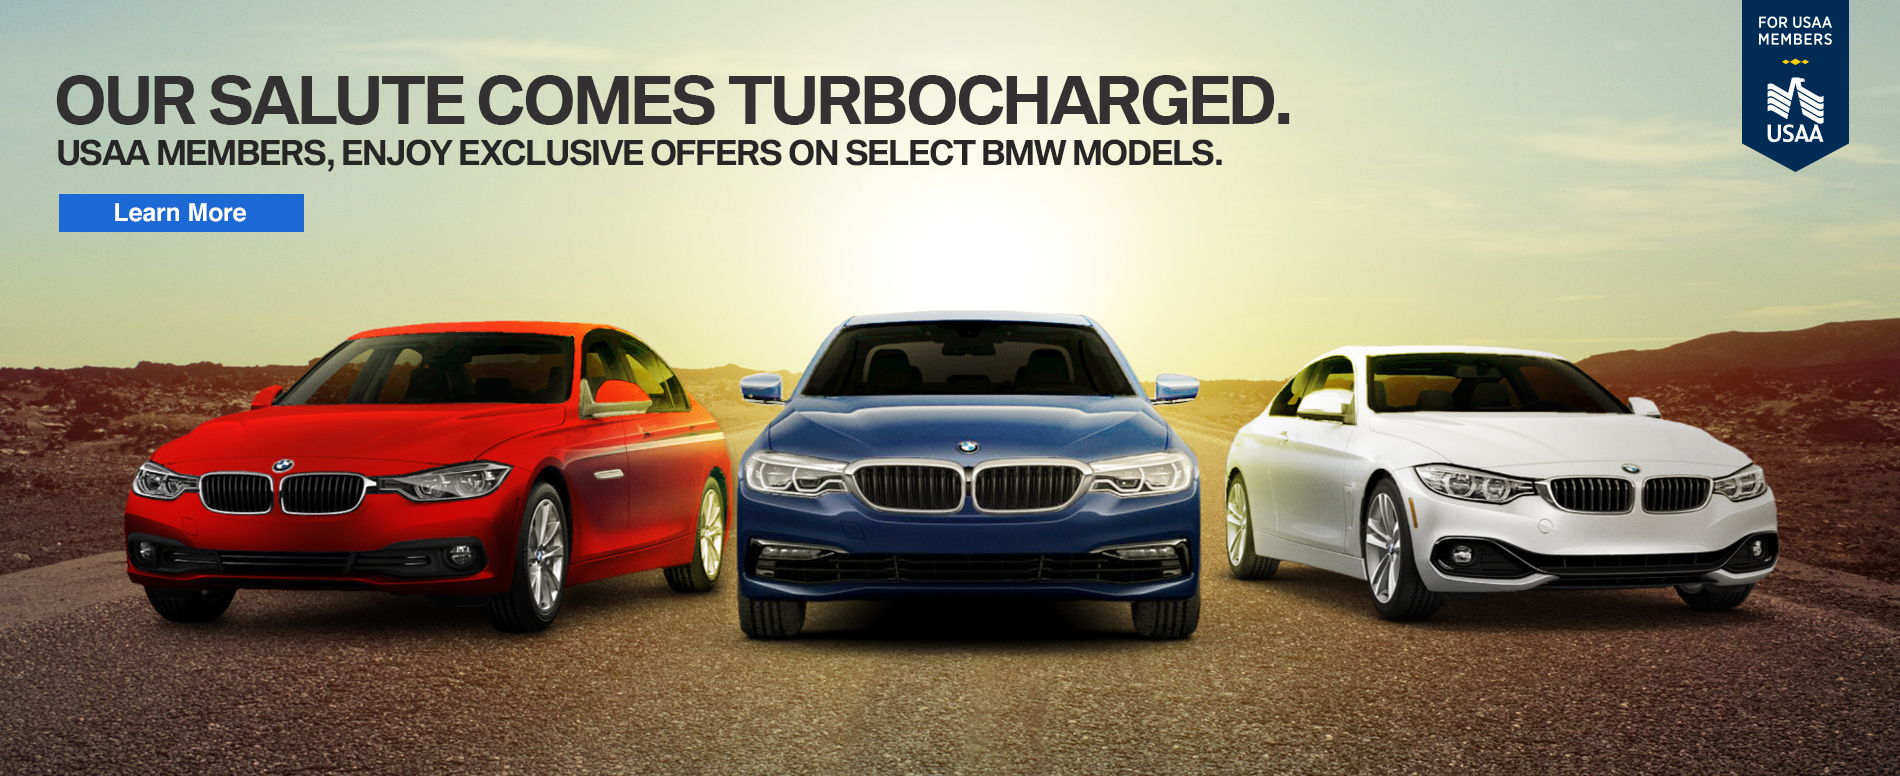 BMW USAA Military Offer